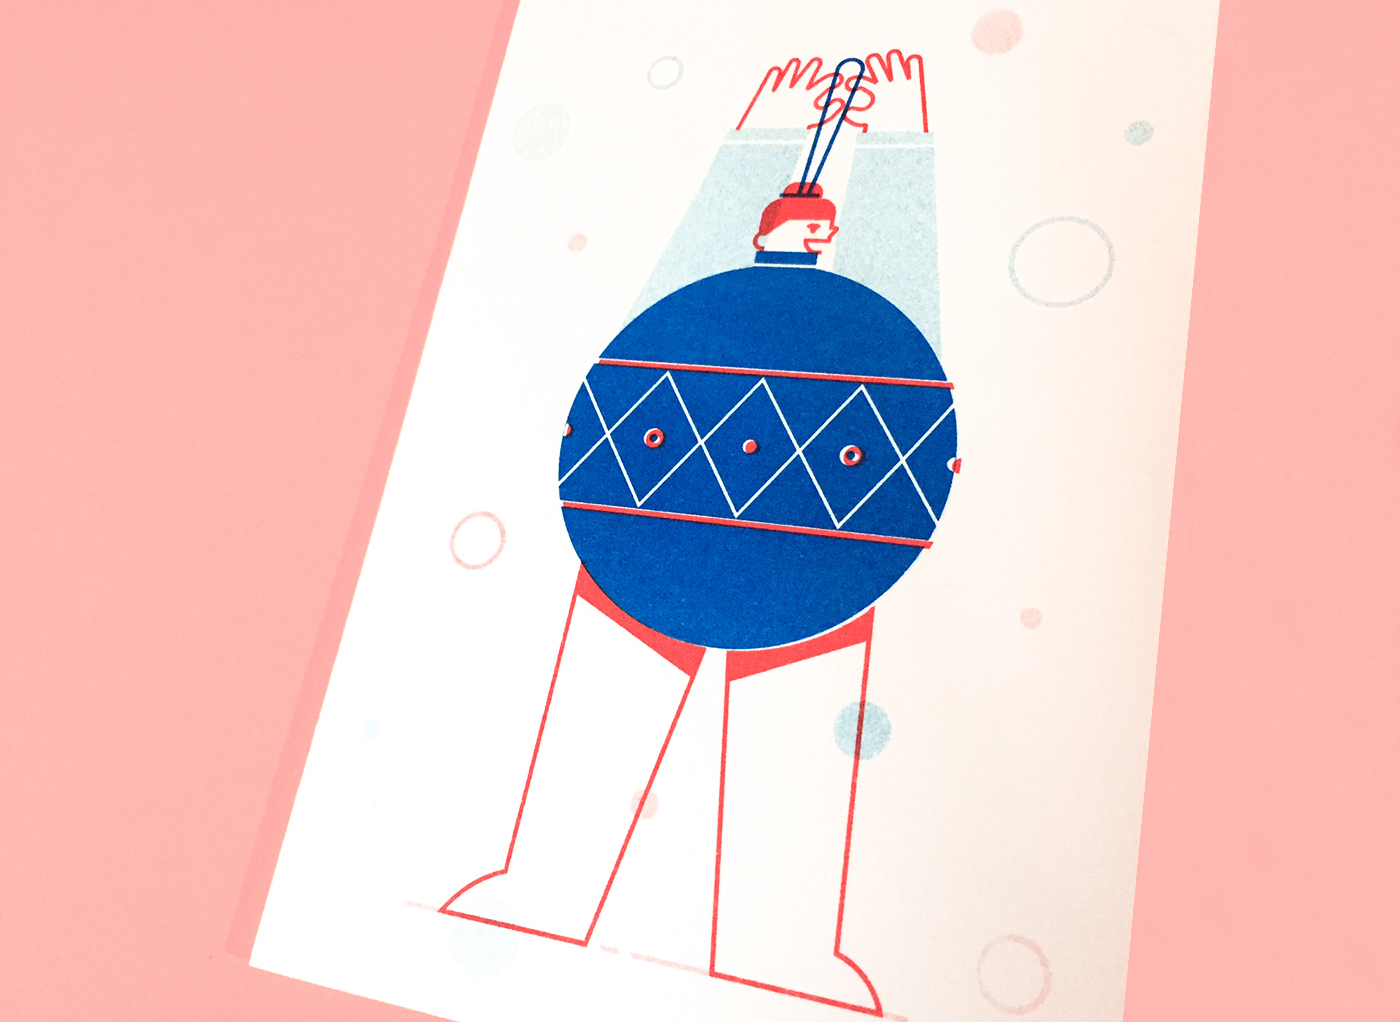 risograph postcards holidays Christmas festive card gift Tree  friends sweater